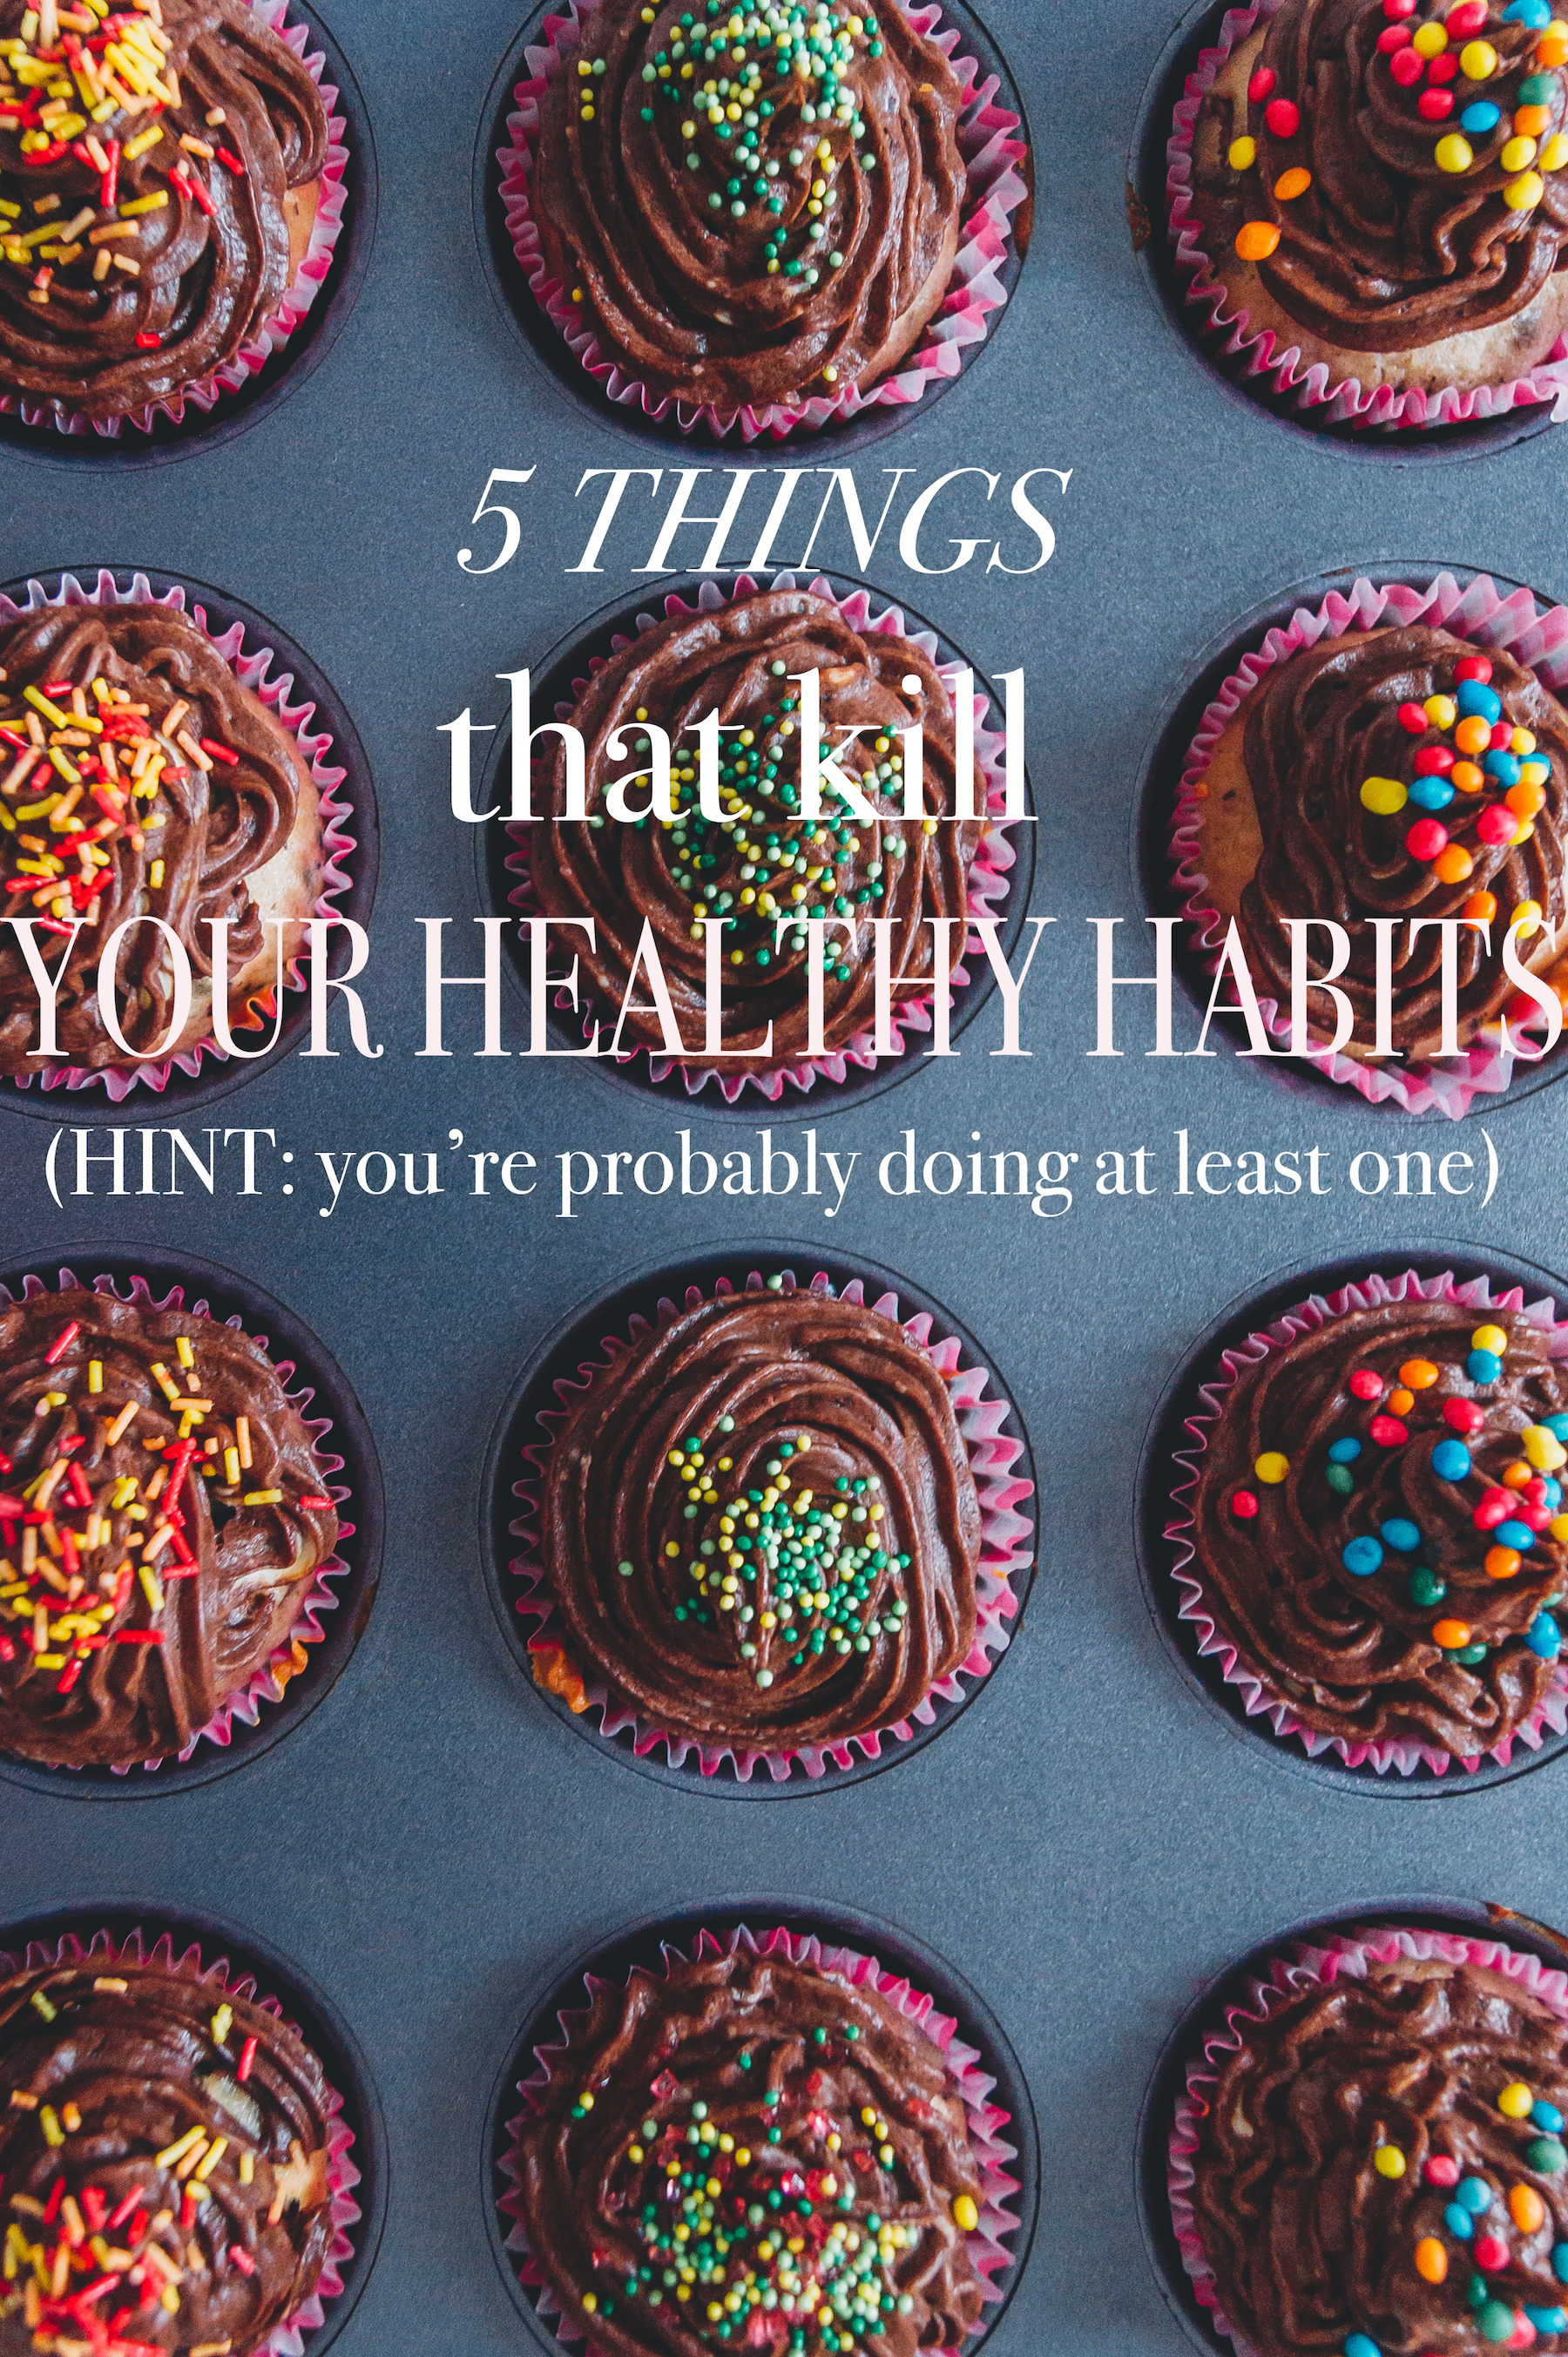 So, you think that you are doing everything right - eating your salads and doing your workouts - but still there is something that seems off. Here are 5 things that you do that secretly KILL your healthy habits + how you prevent them!